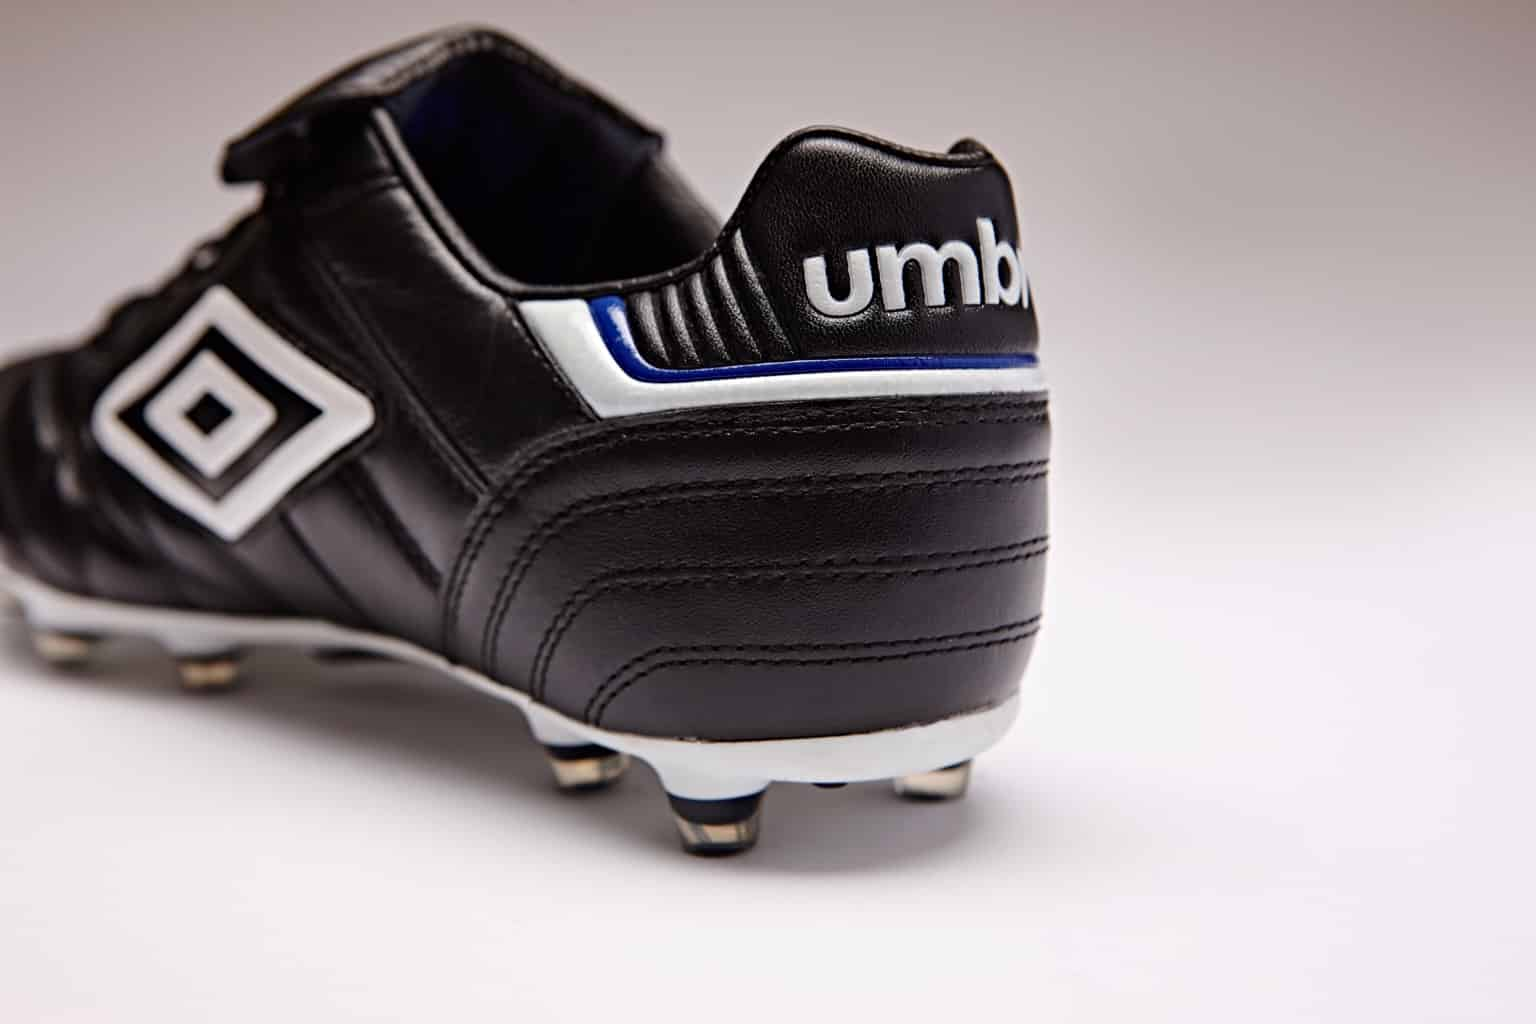 Umbro-Speciali-Eternal-4